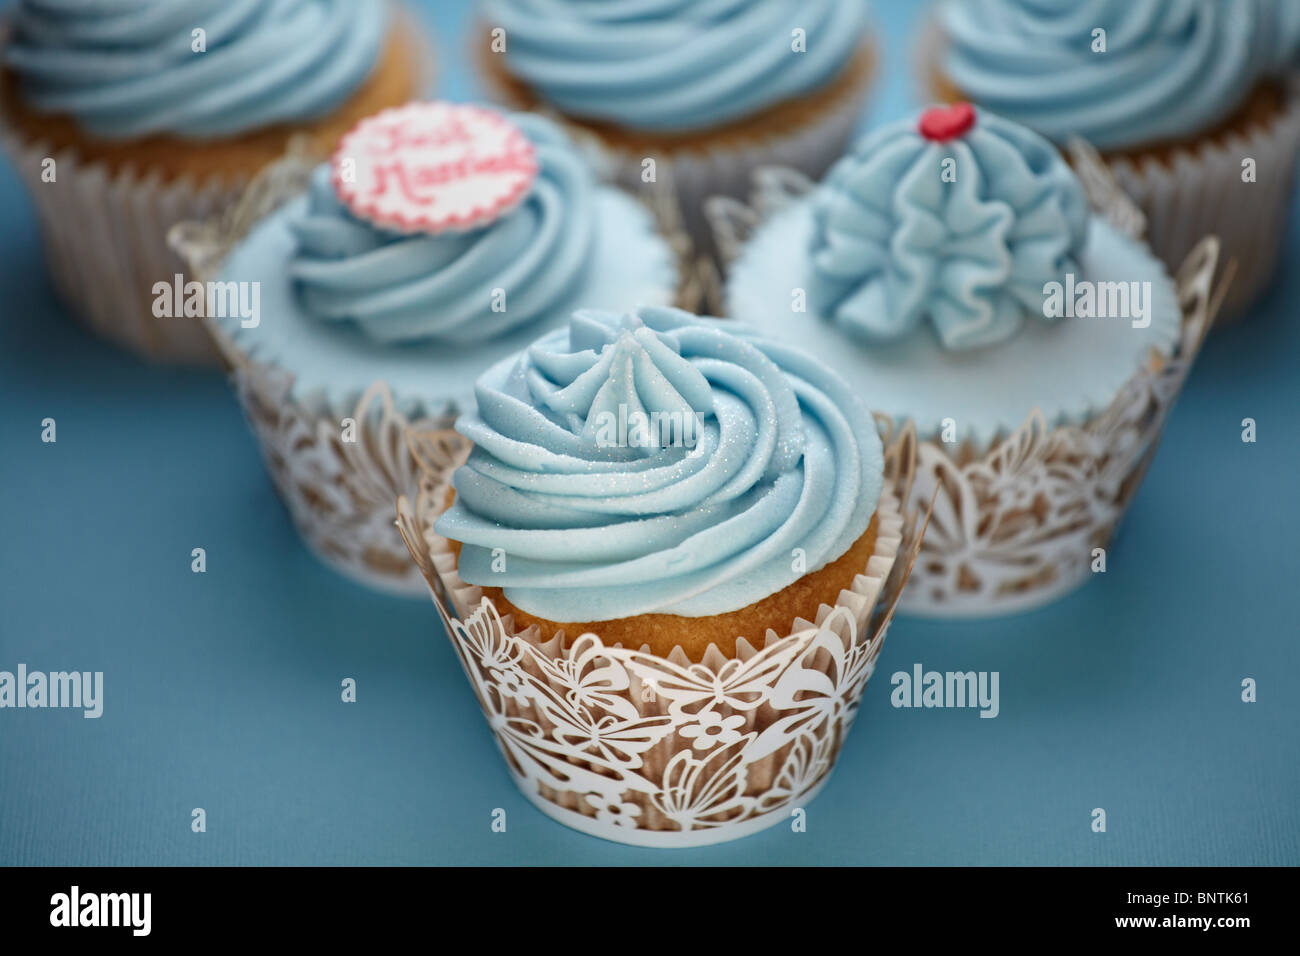 Cupcakes arranged for a party or a wedding reception Stock Photo ...